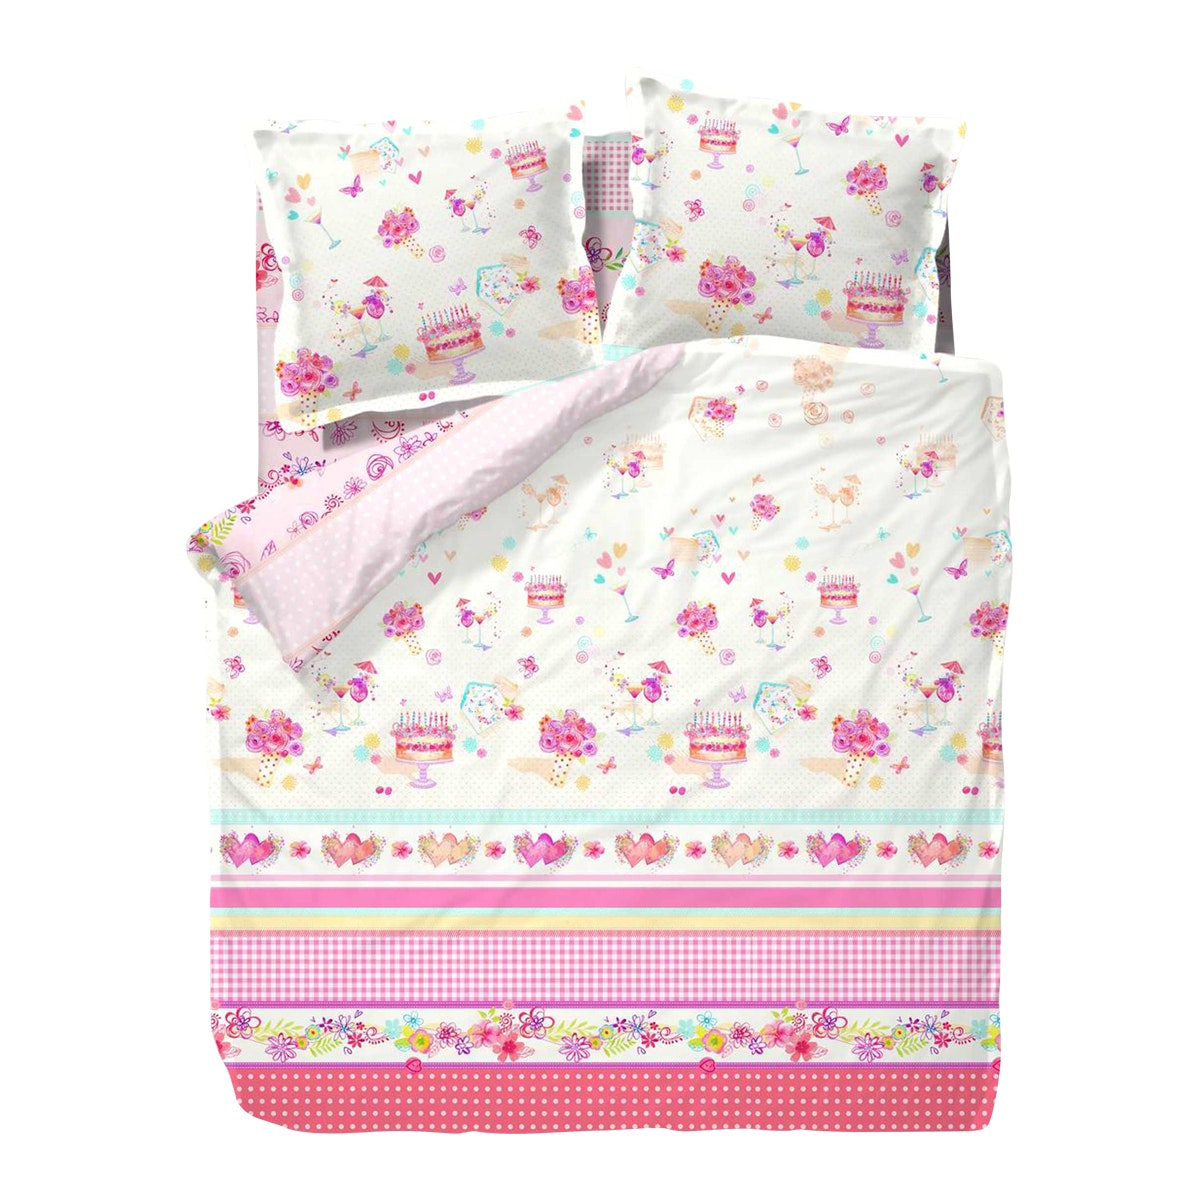 Kanaya Nina MG Heidi Bed Sheet Set (King) 180x200x30cm